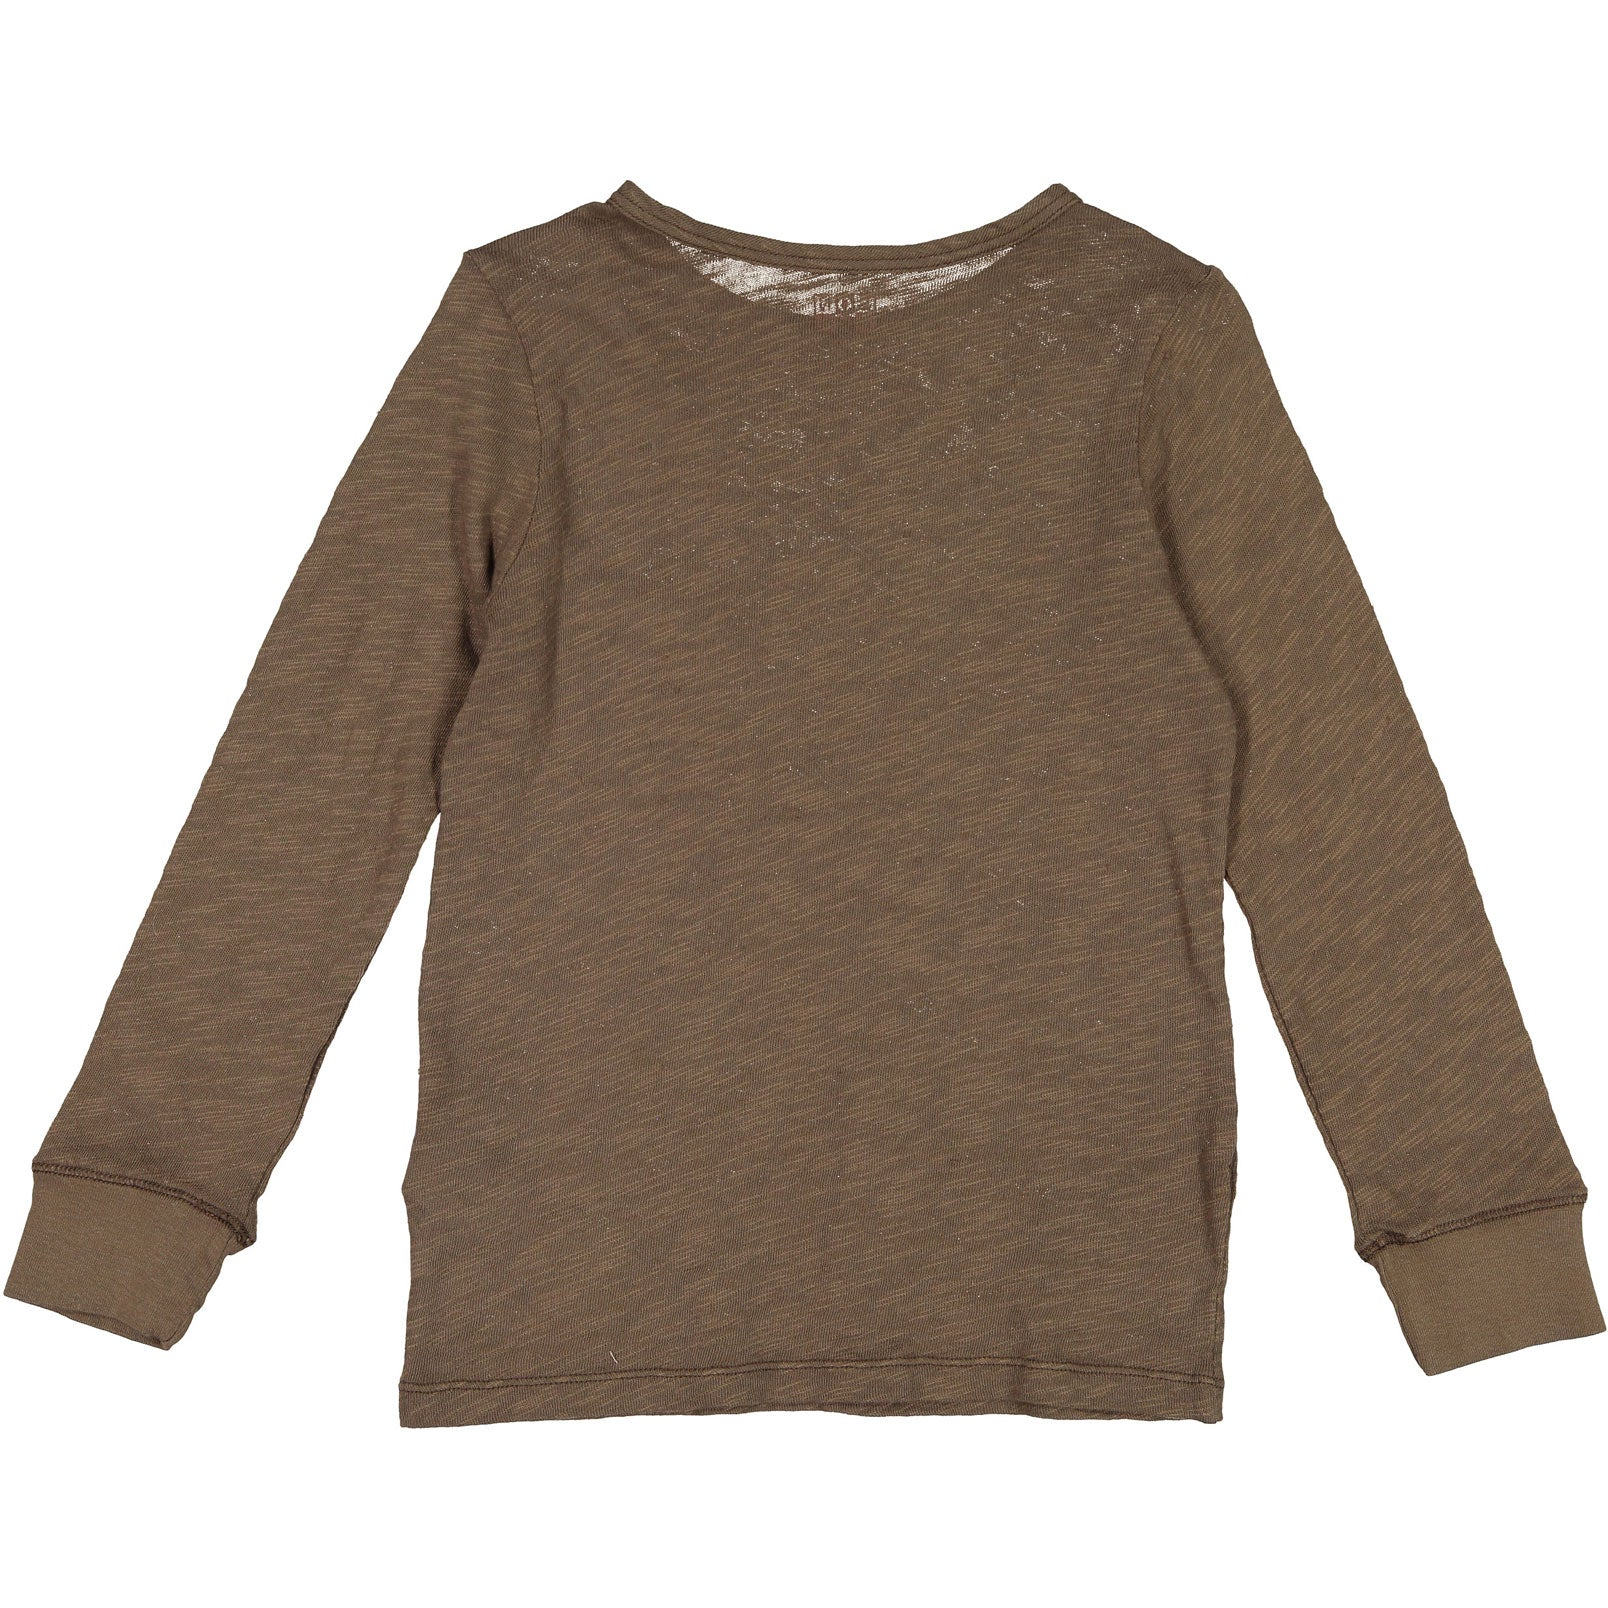 Bonton Brown Pocket Linen Tee - Ladida